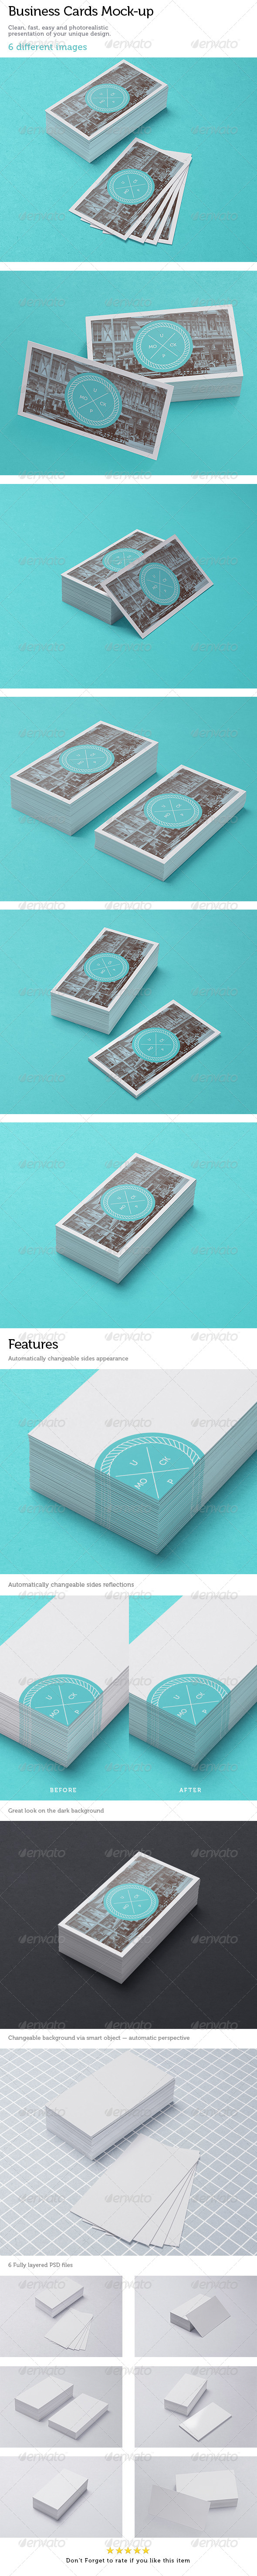 GraphicRiver Business Cards Studio Mock-up 3 5001909